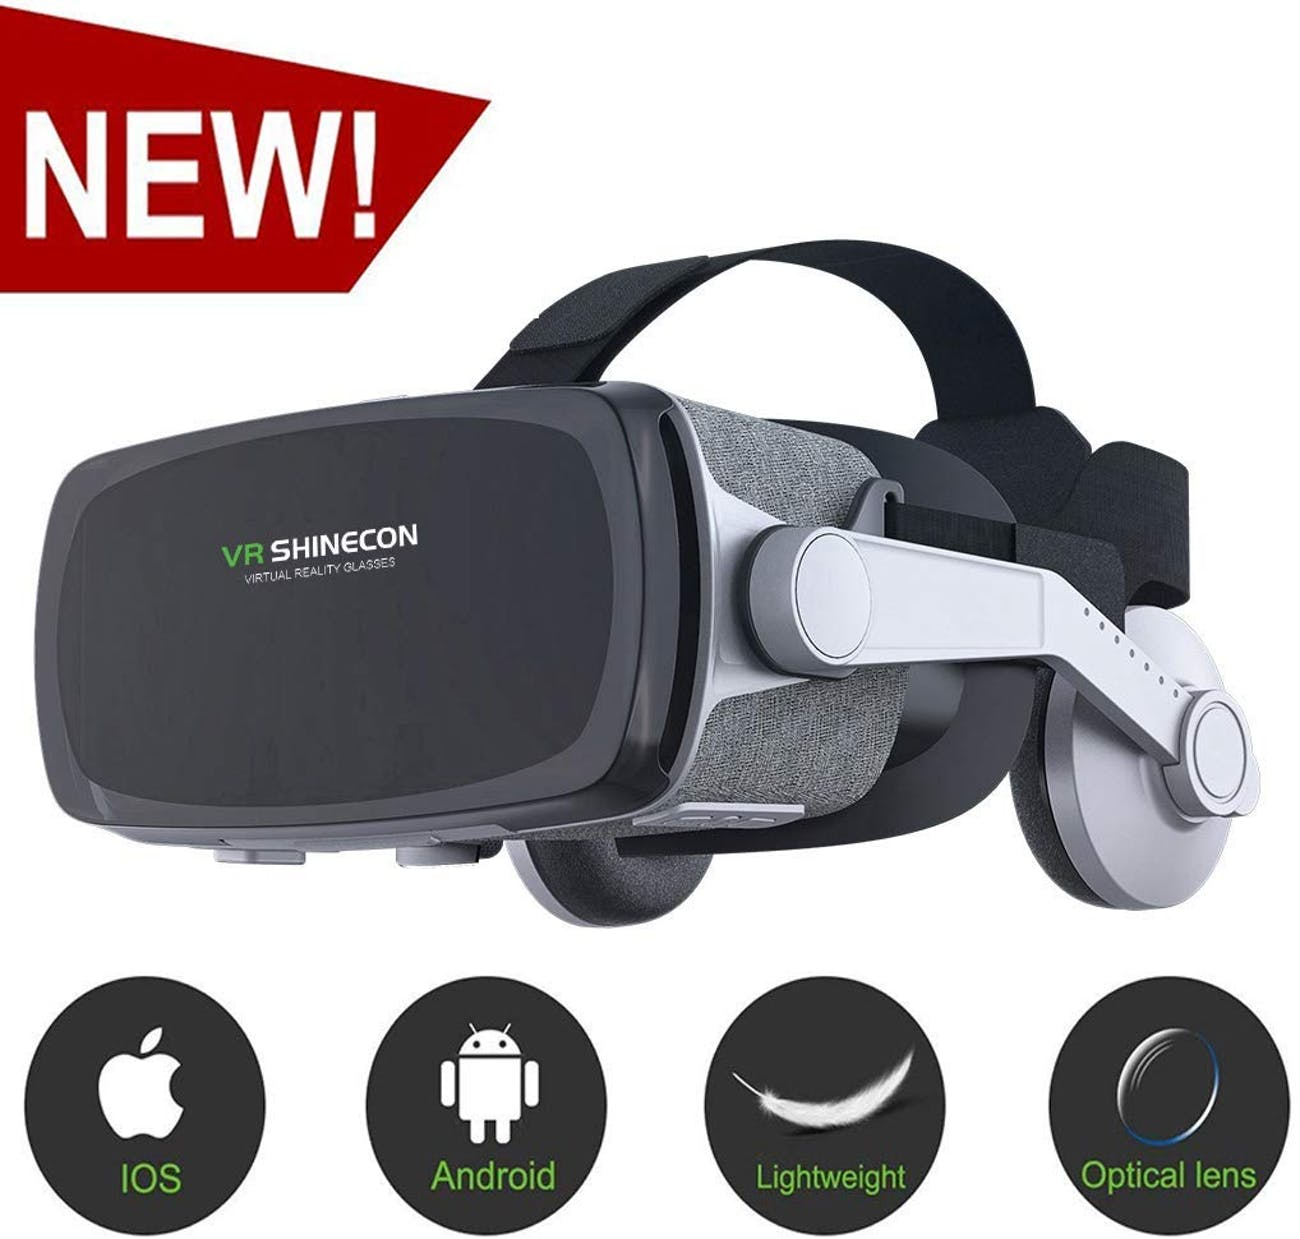 Prime Day 2019: Embrace the VR Entertainment Revolution With